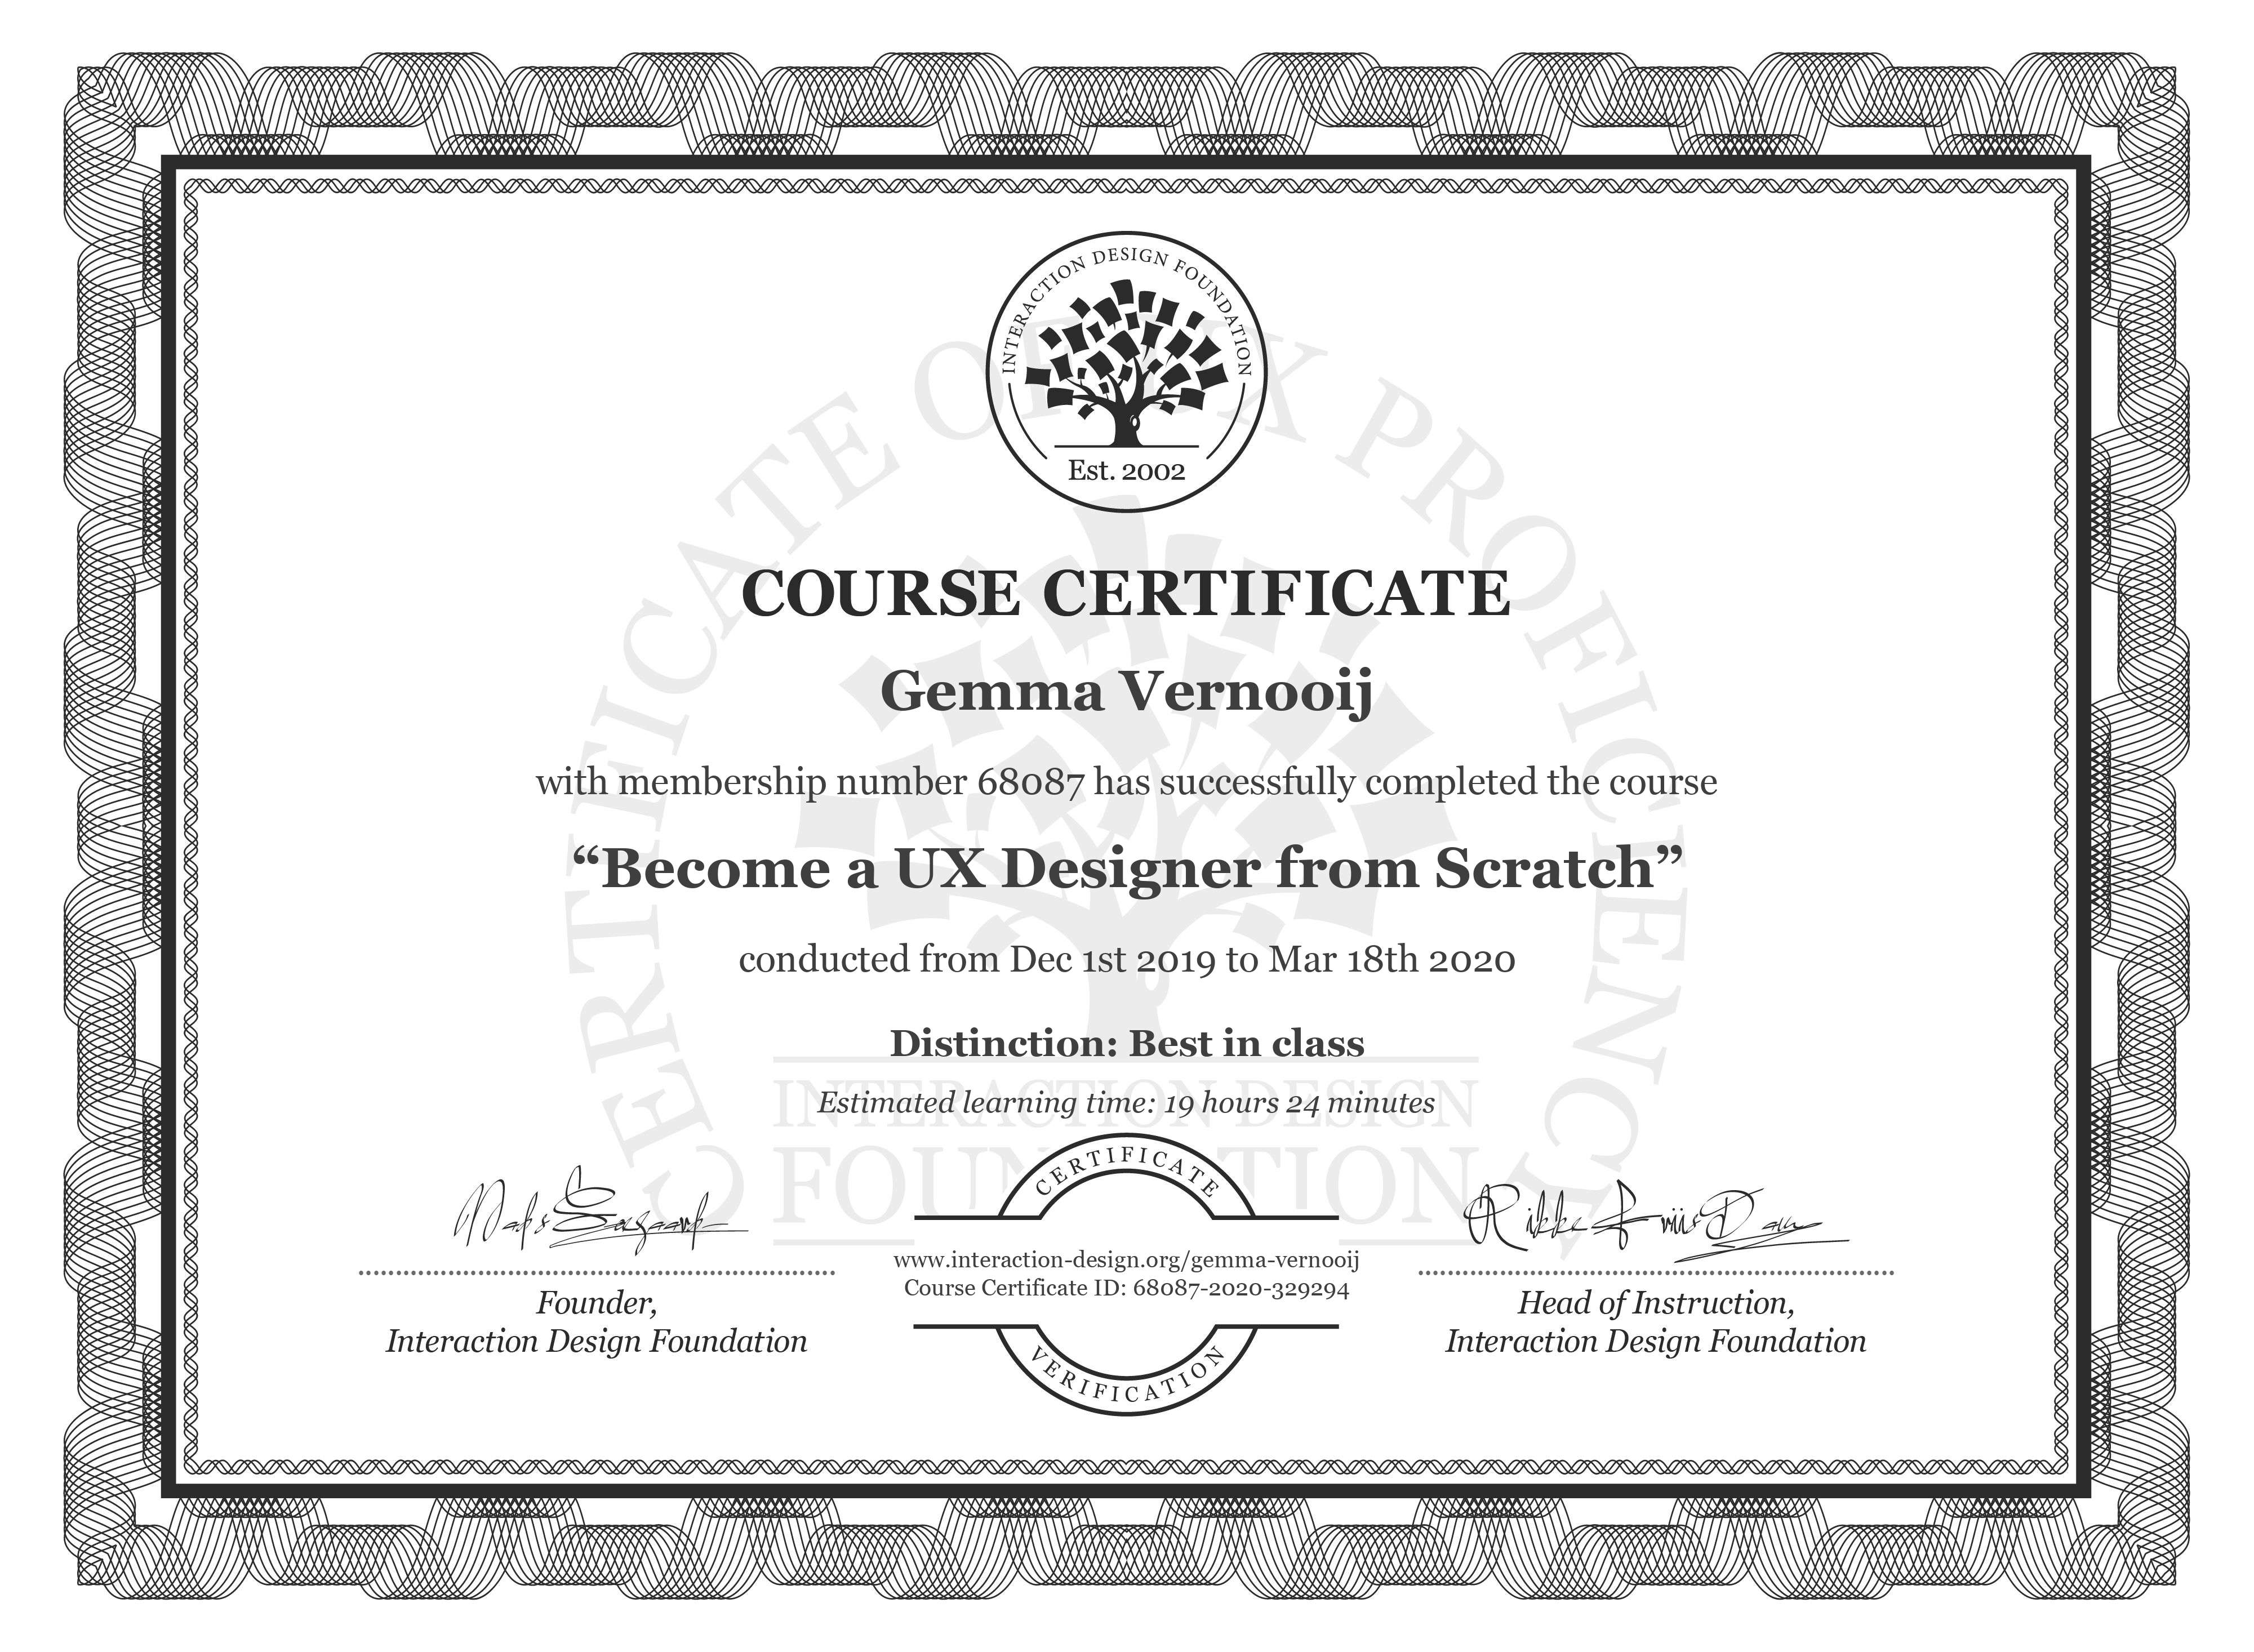 Gemma Vernooij's Course Certificate: User Experience: The Beginner's Guide